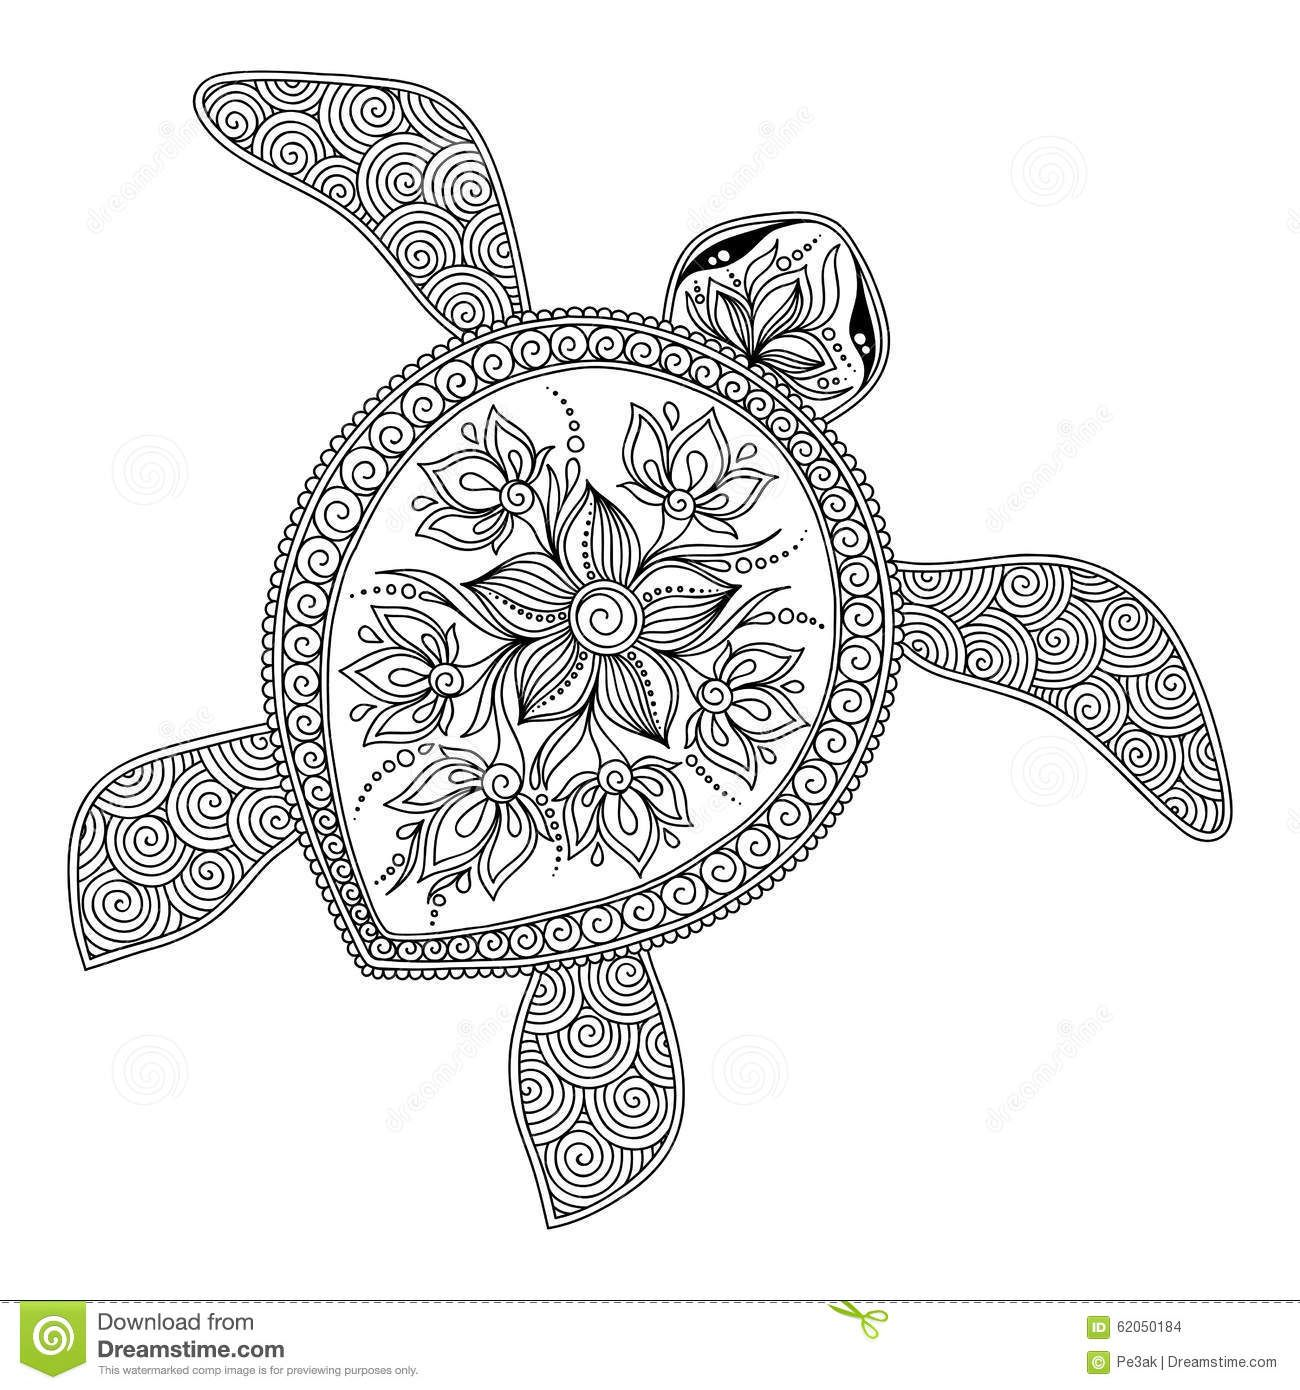 coloring turtle mandala download sheets for colouring gif mandala coloring turtle